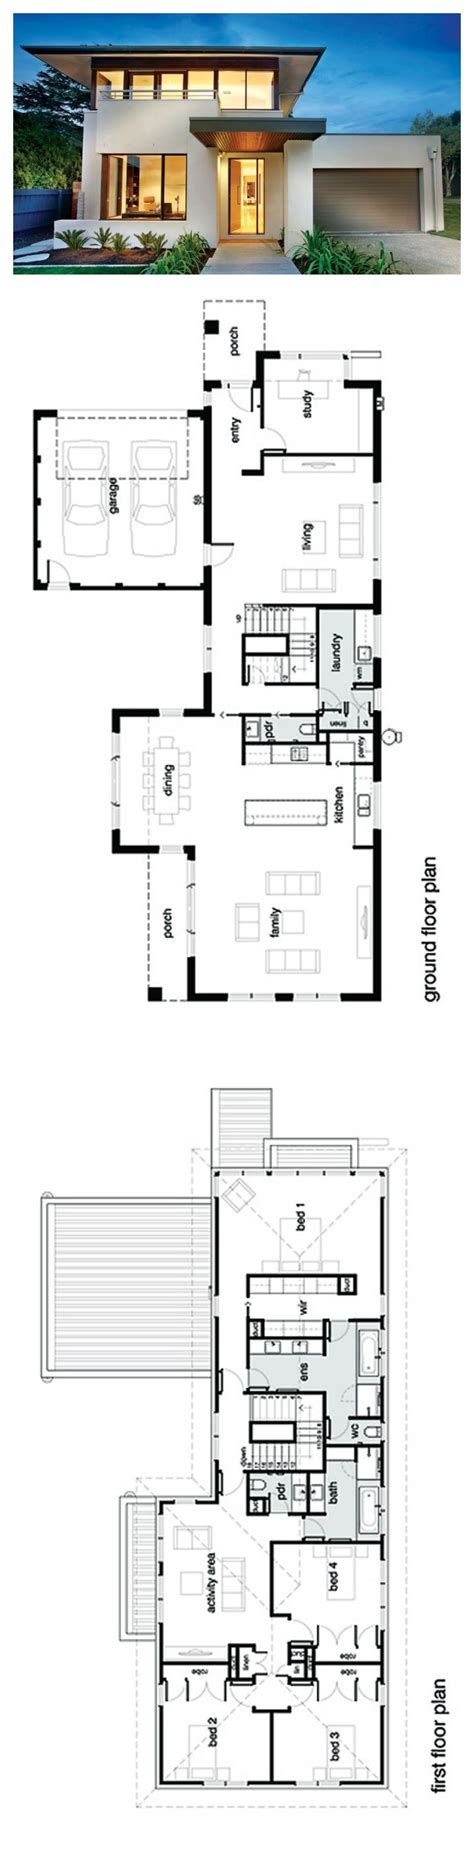 home floor plans contemporary best 25 modern house plans ideas on pinterest modern